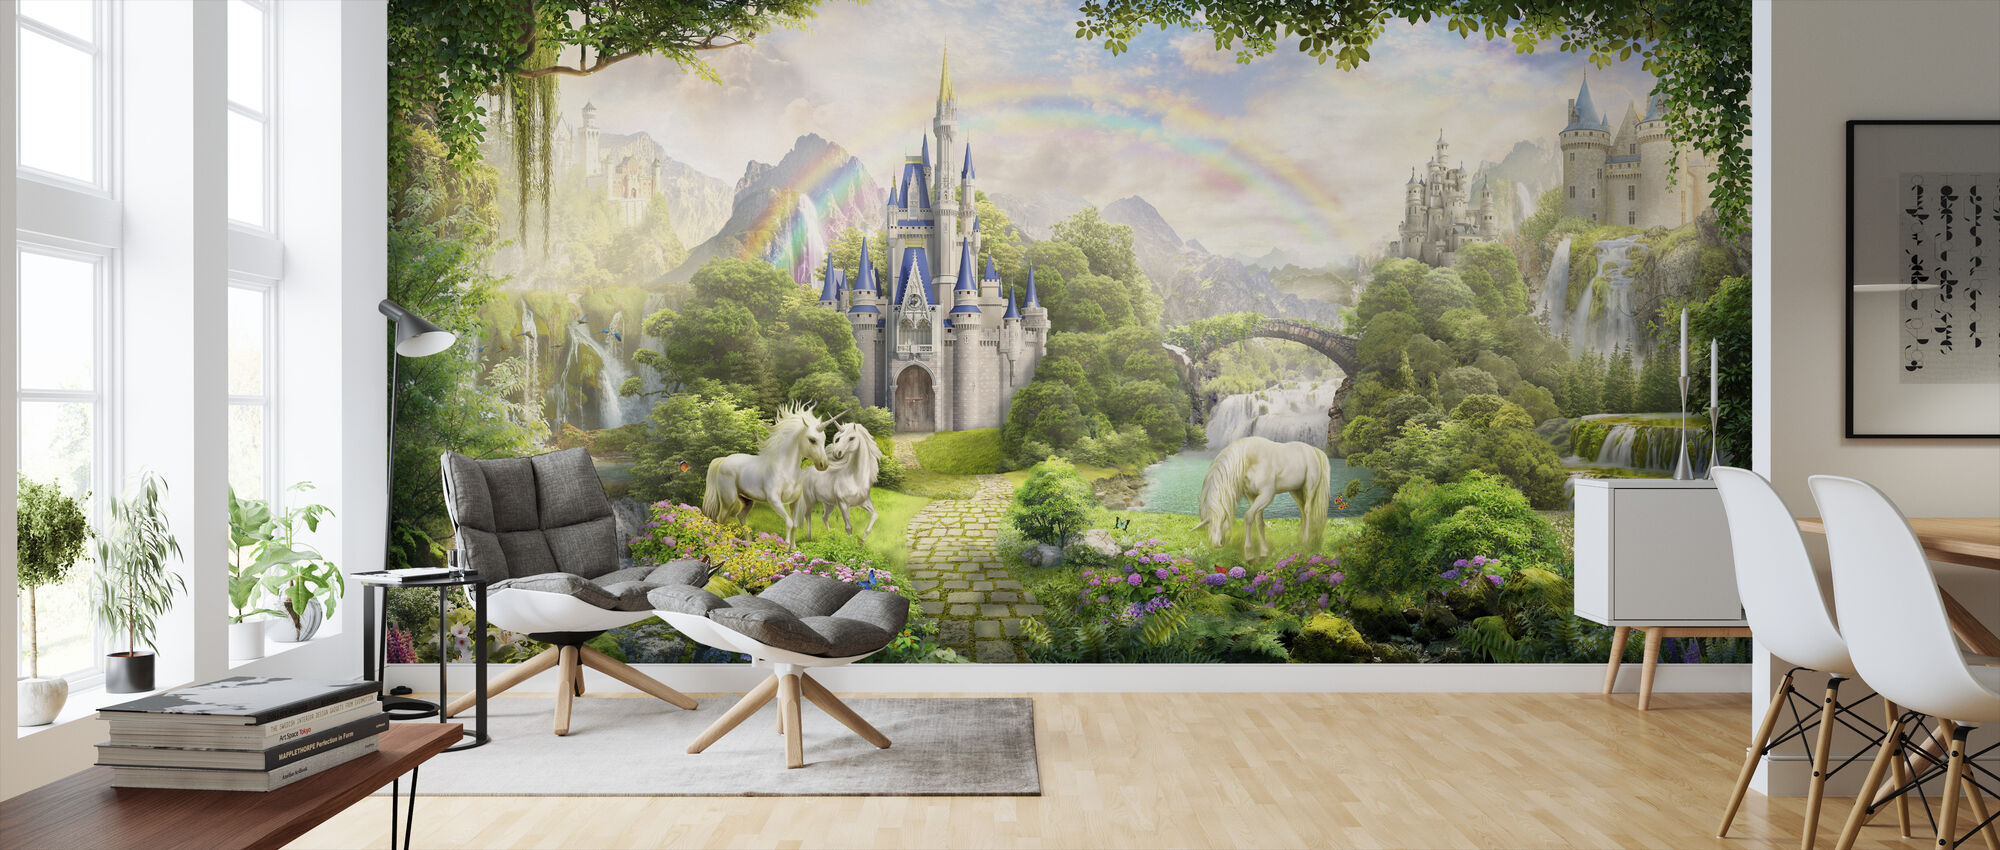 Unicorns Residence - Wallpaper - Living Room